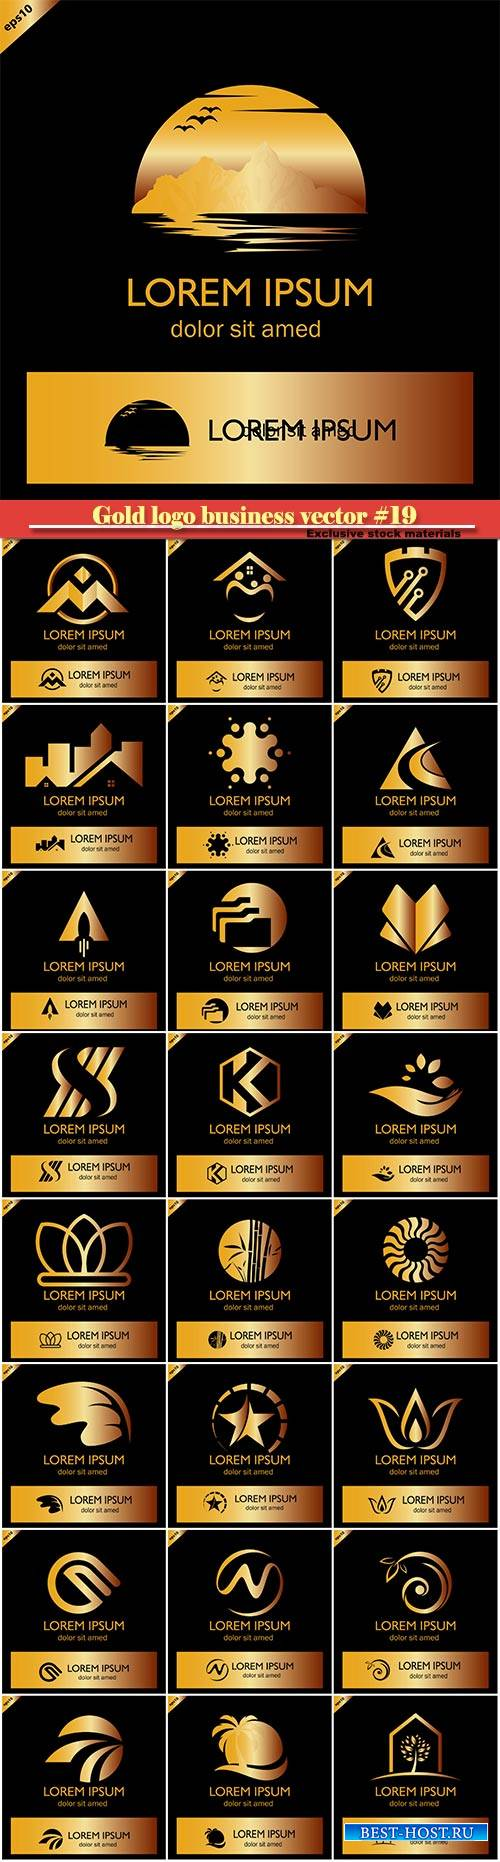 Gold logo business vector illustration #19